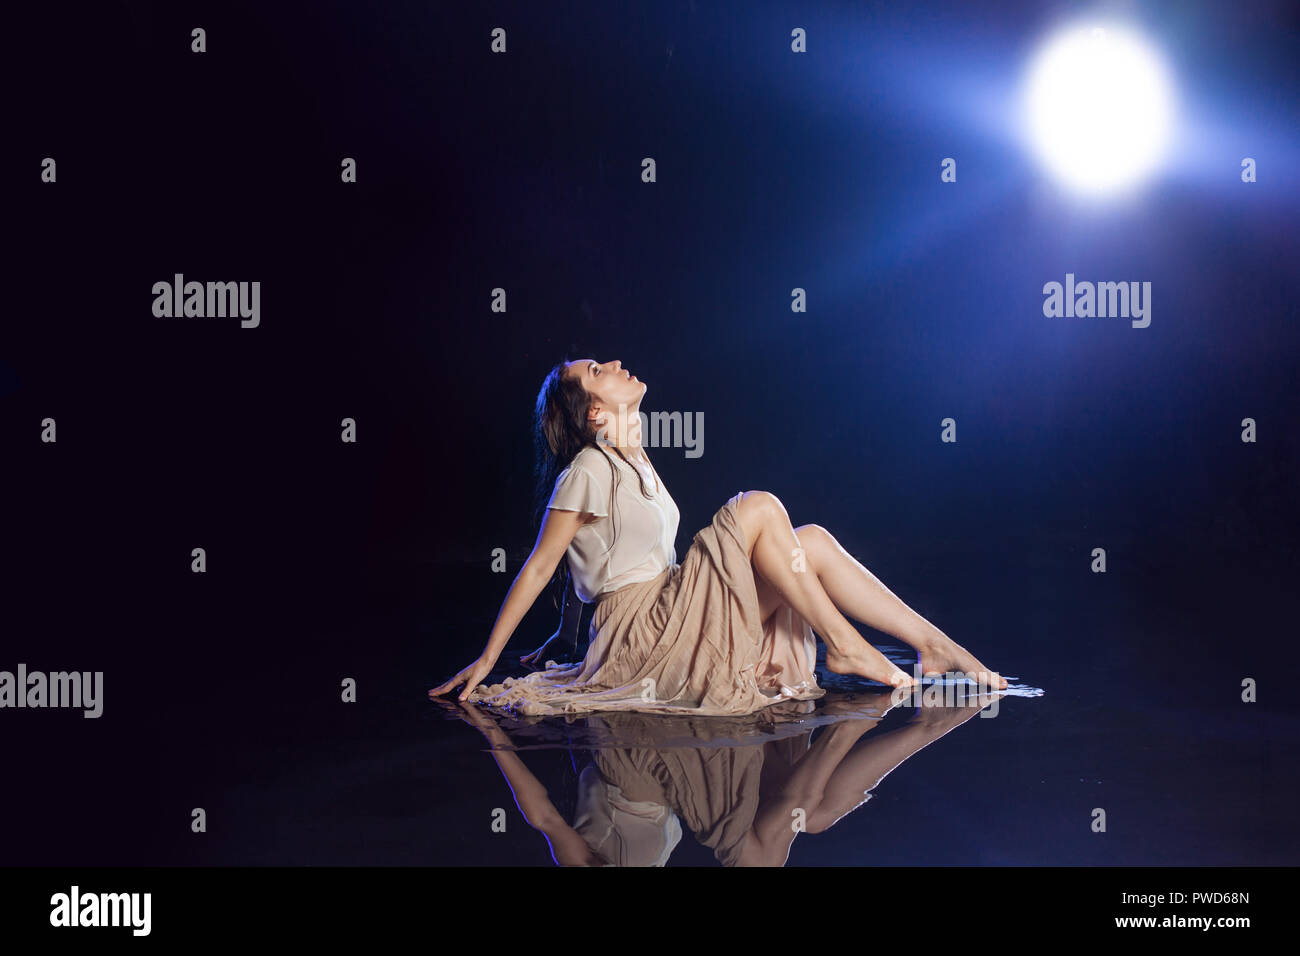 Girl sitting in the rain, night concept. Mystical style Stock Photo